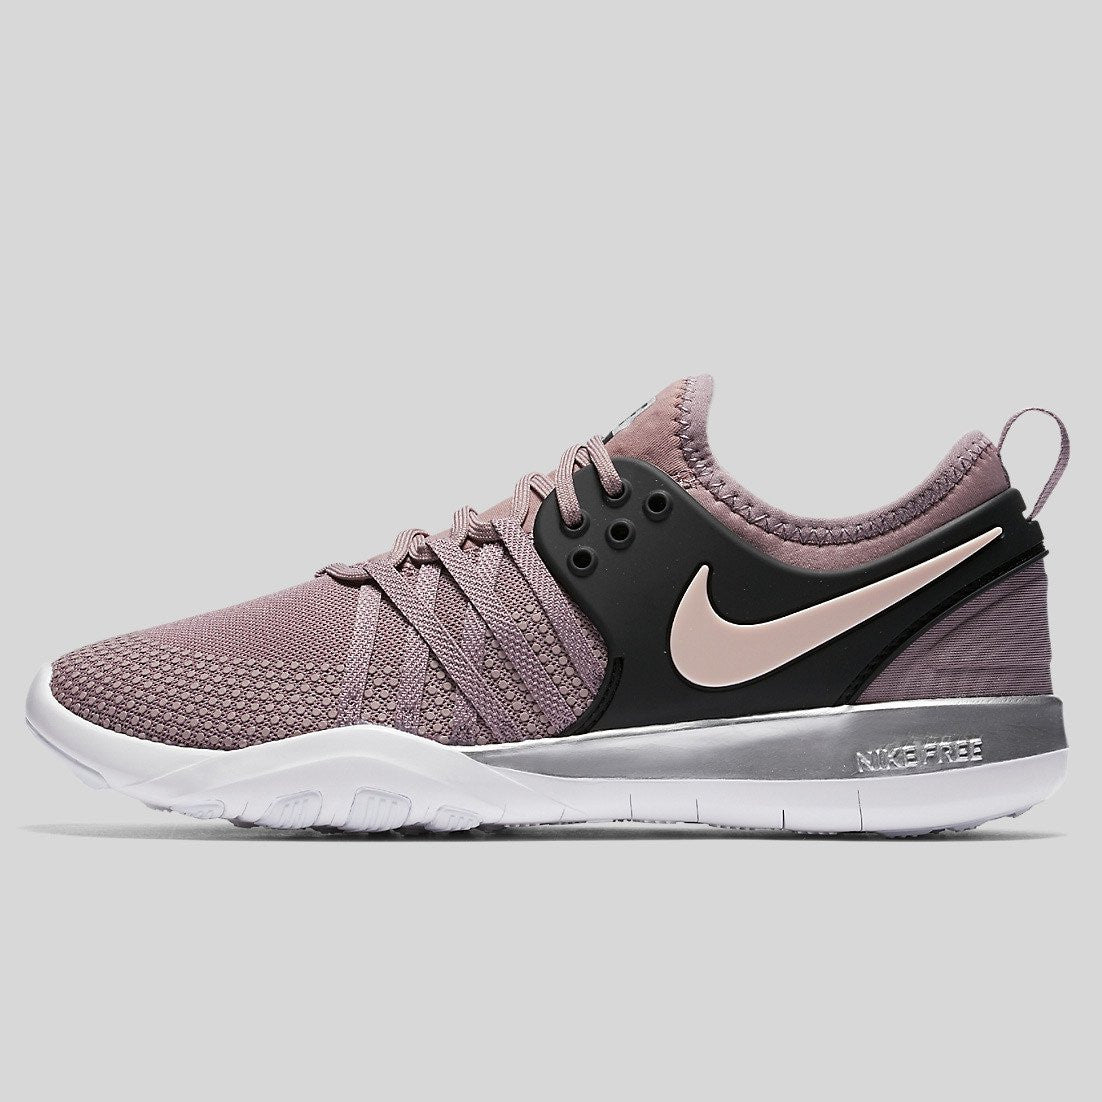 finest selection f58de 33111 Nike Wmns Free TR 7 Bionic Taupe Grey Black Sunset Tint (921061-200)